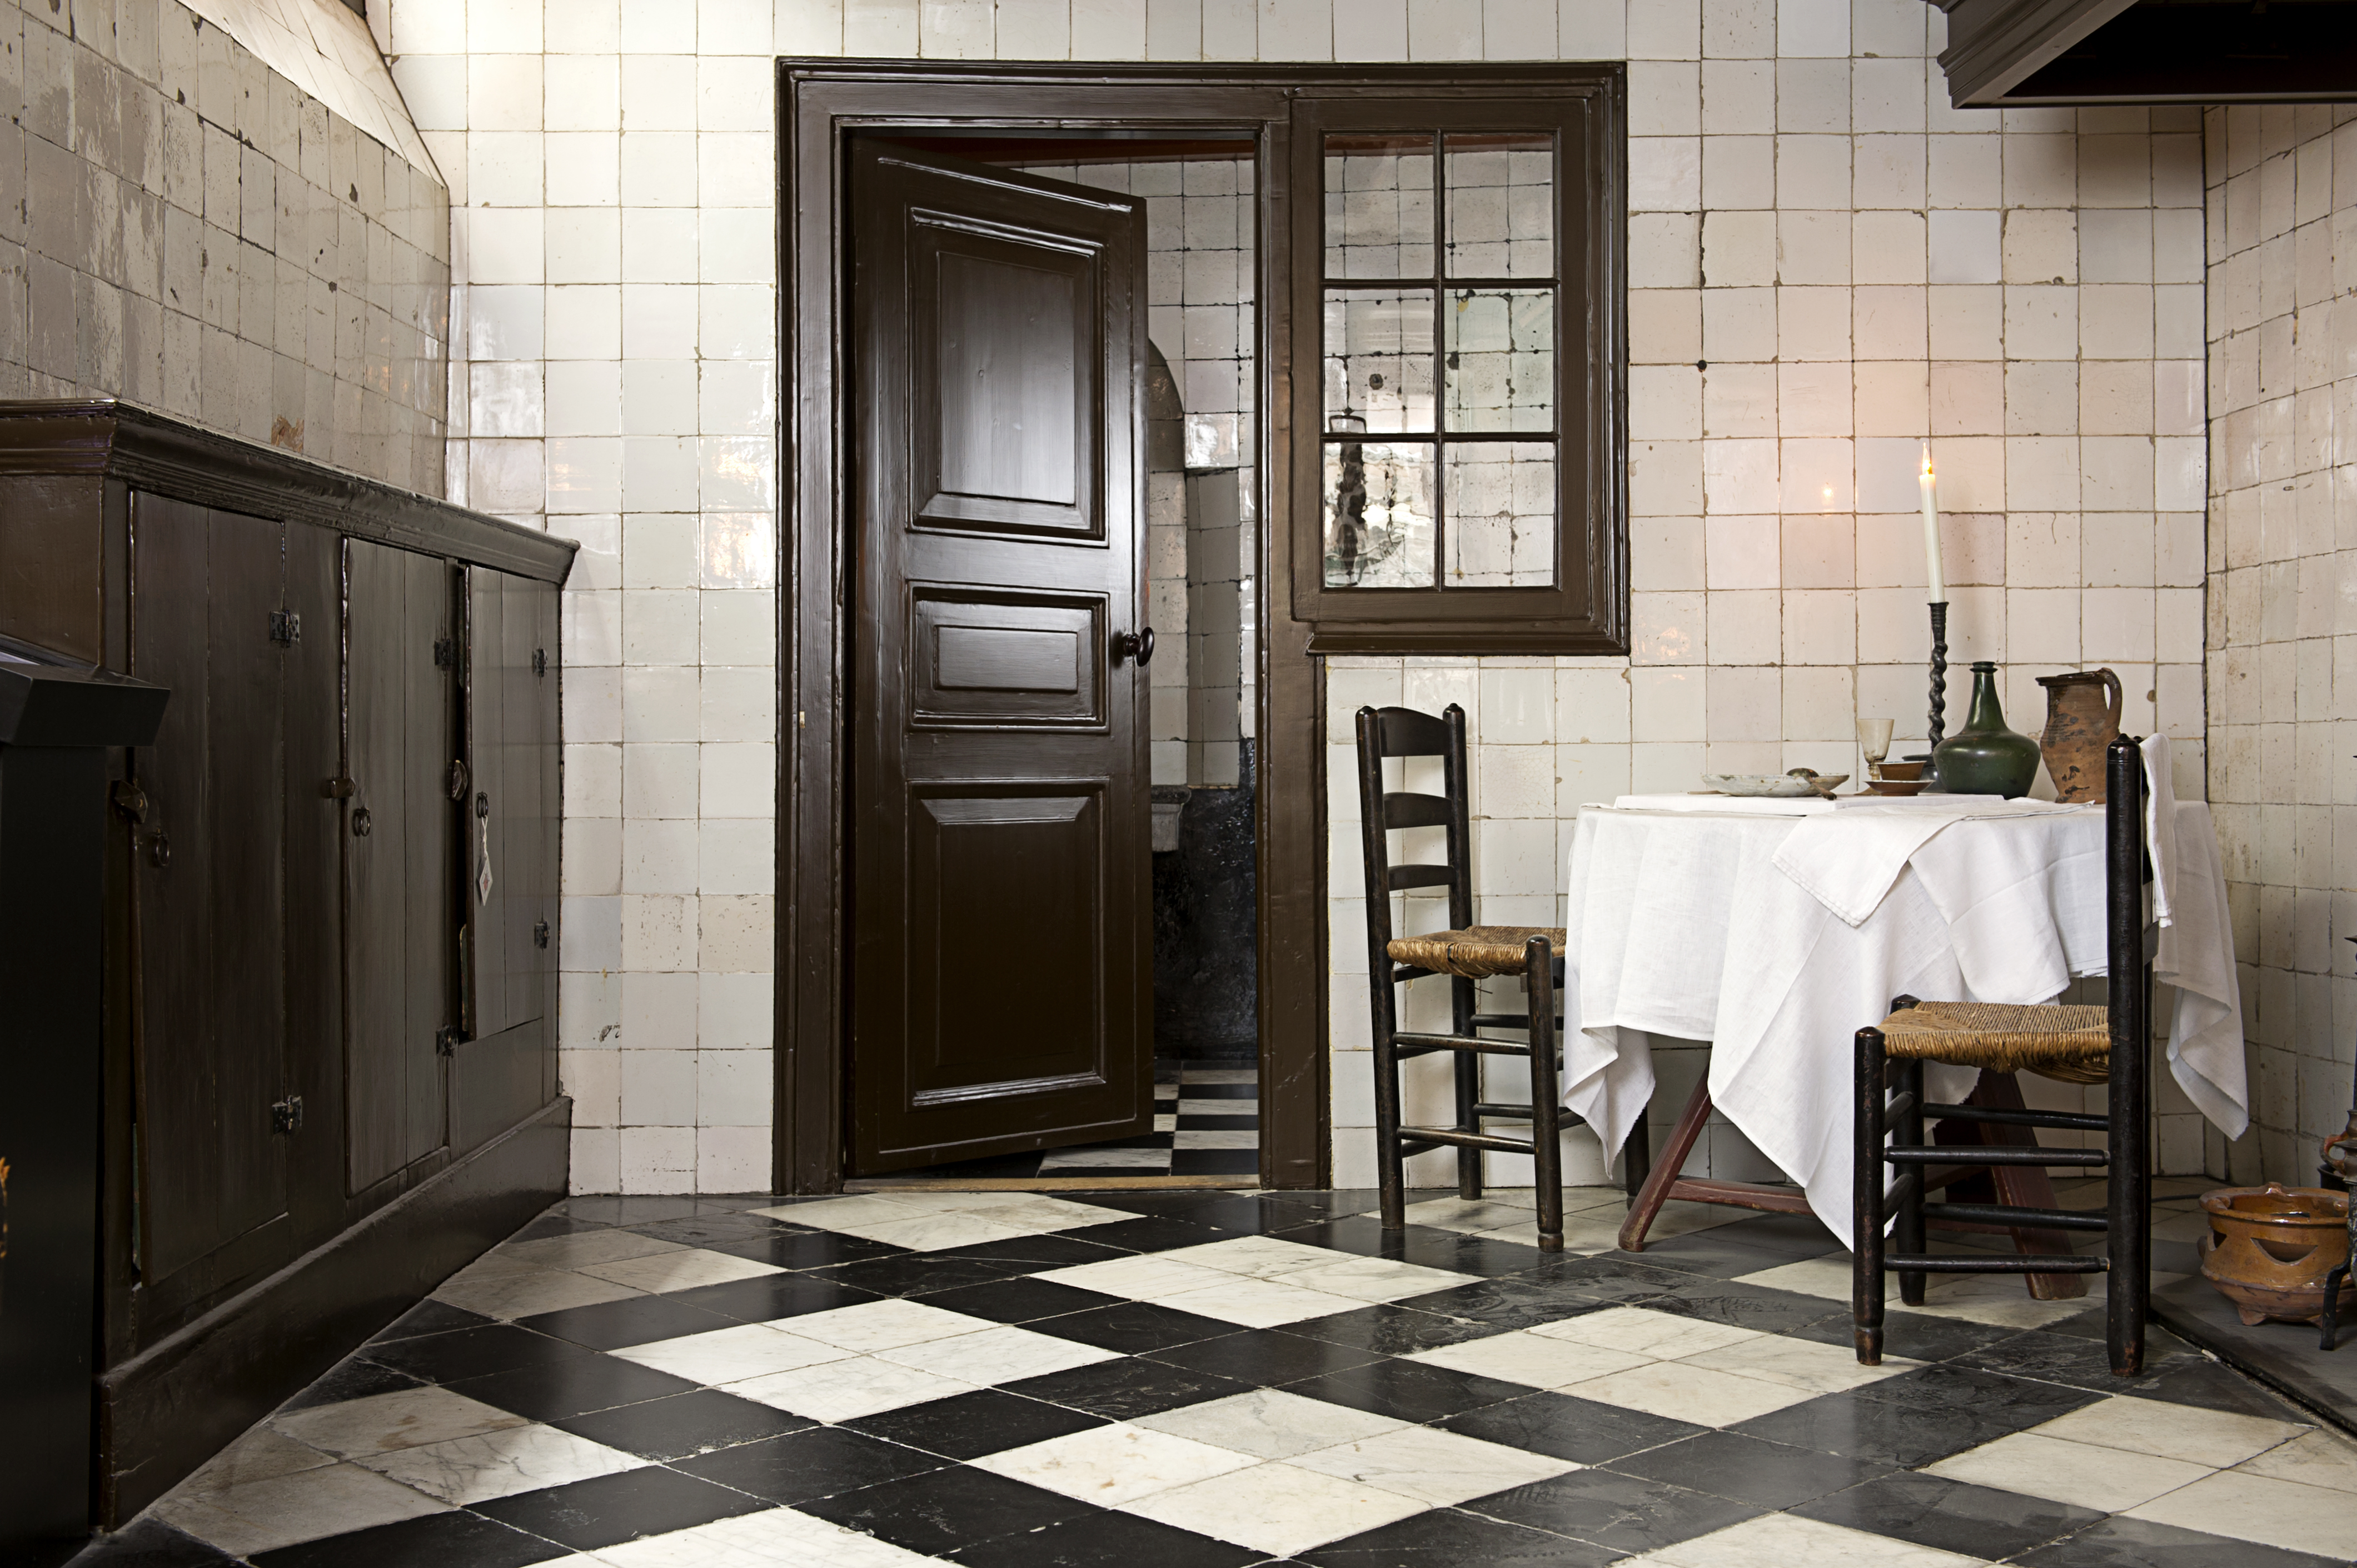 The Priest's kitchen at Our Lord in the Attic / Ons' Lieve Heer op Solder.